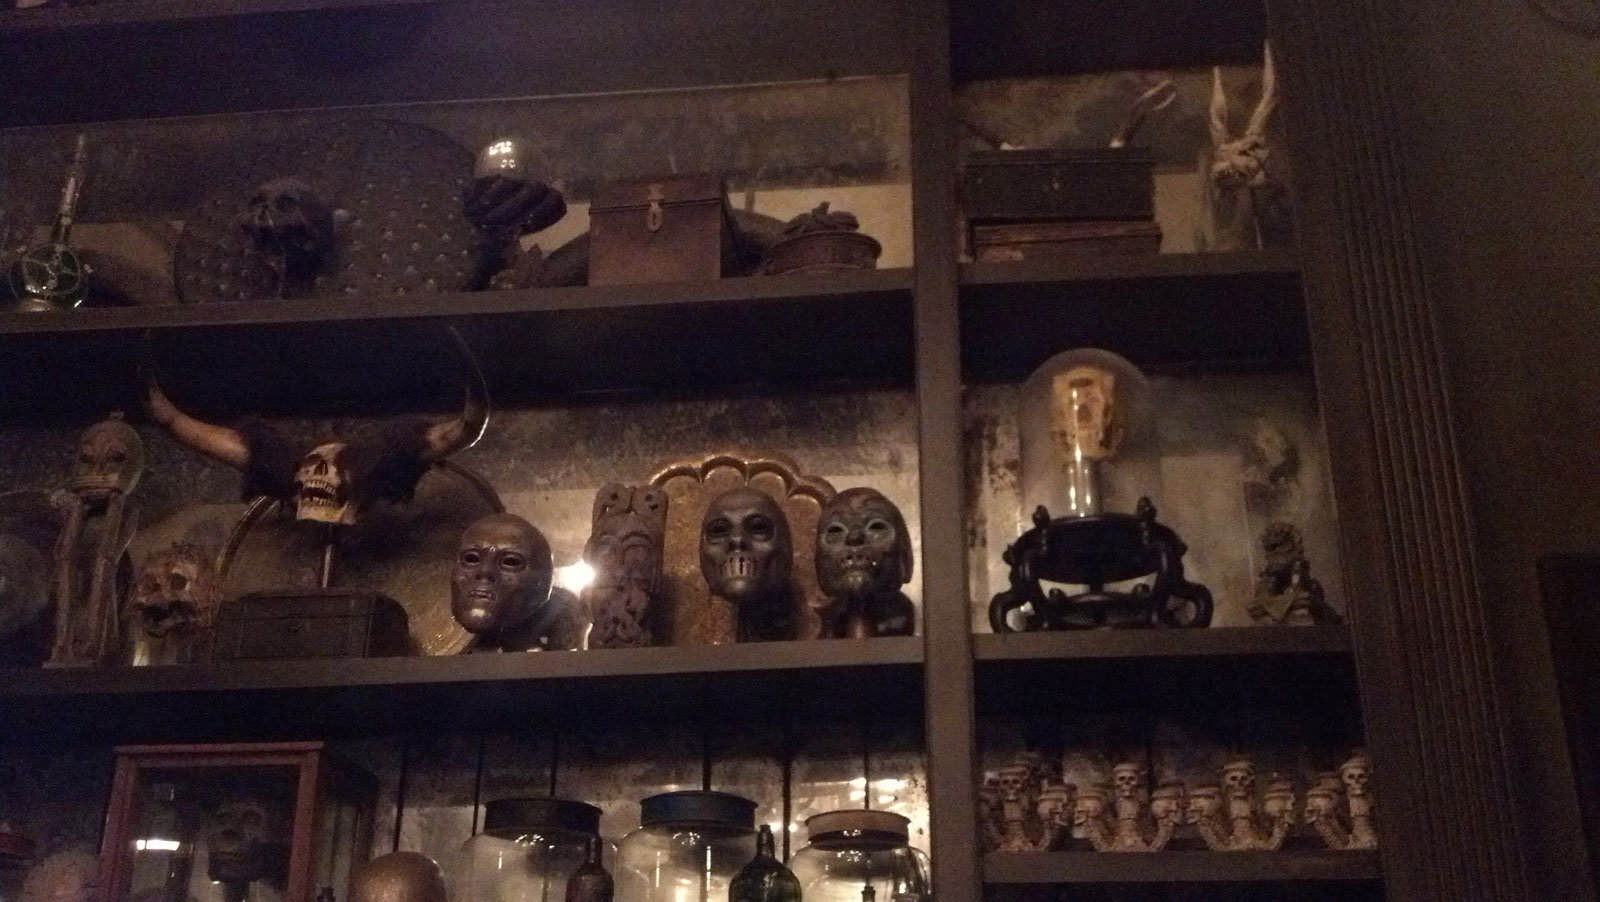 Death Eater masks, skulls, and miscellanea in the Borgin and Burkes shop in Knockturn Alley, December 2015.